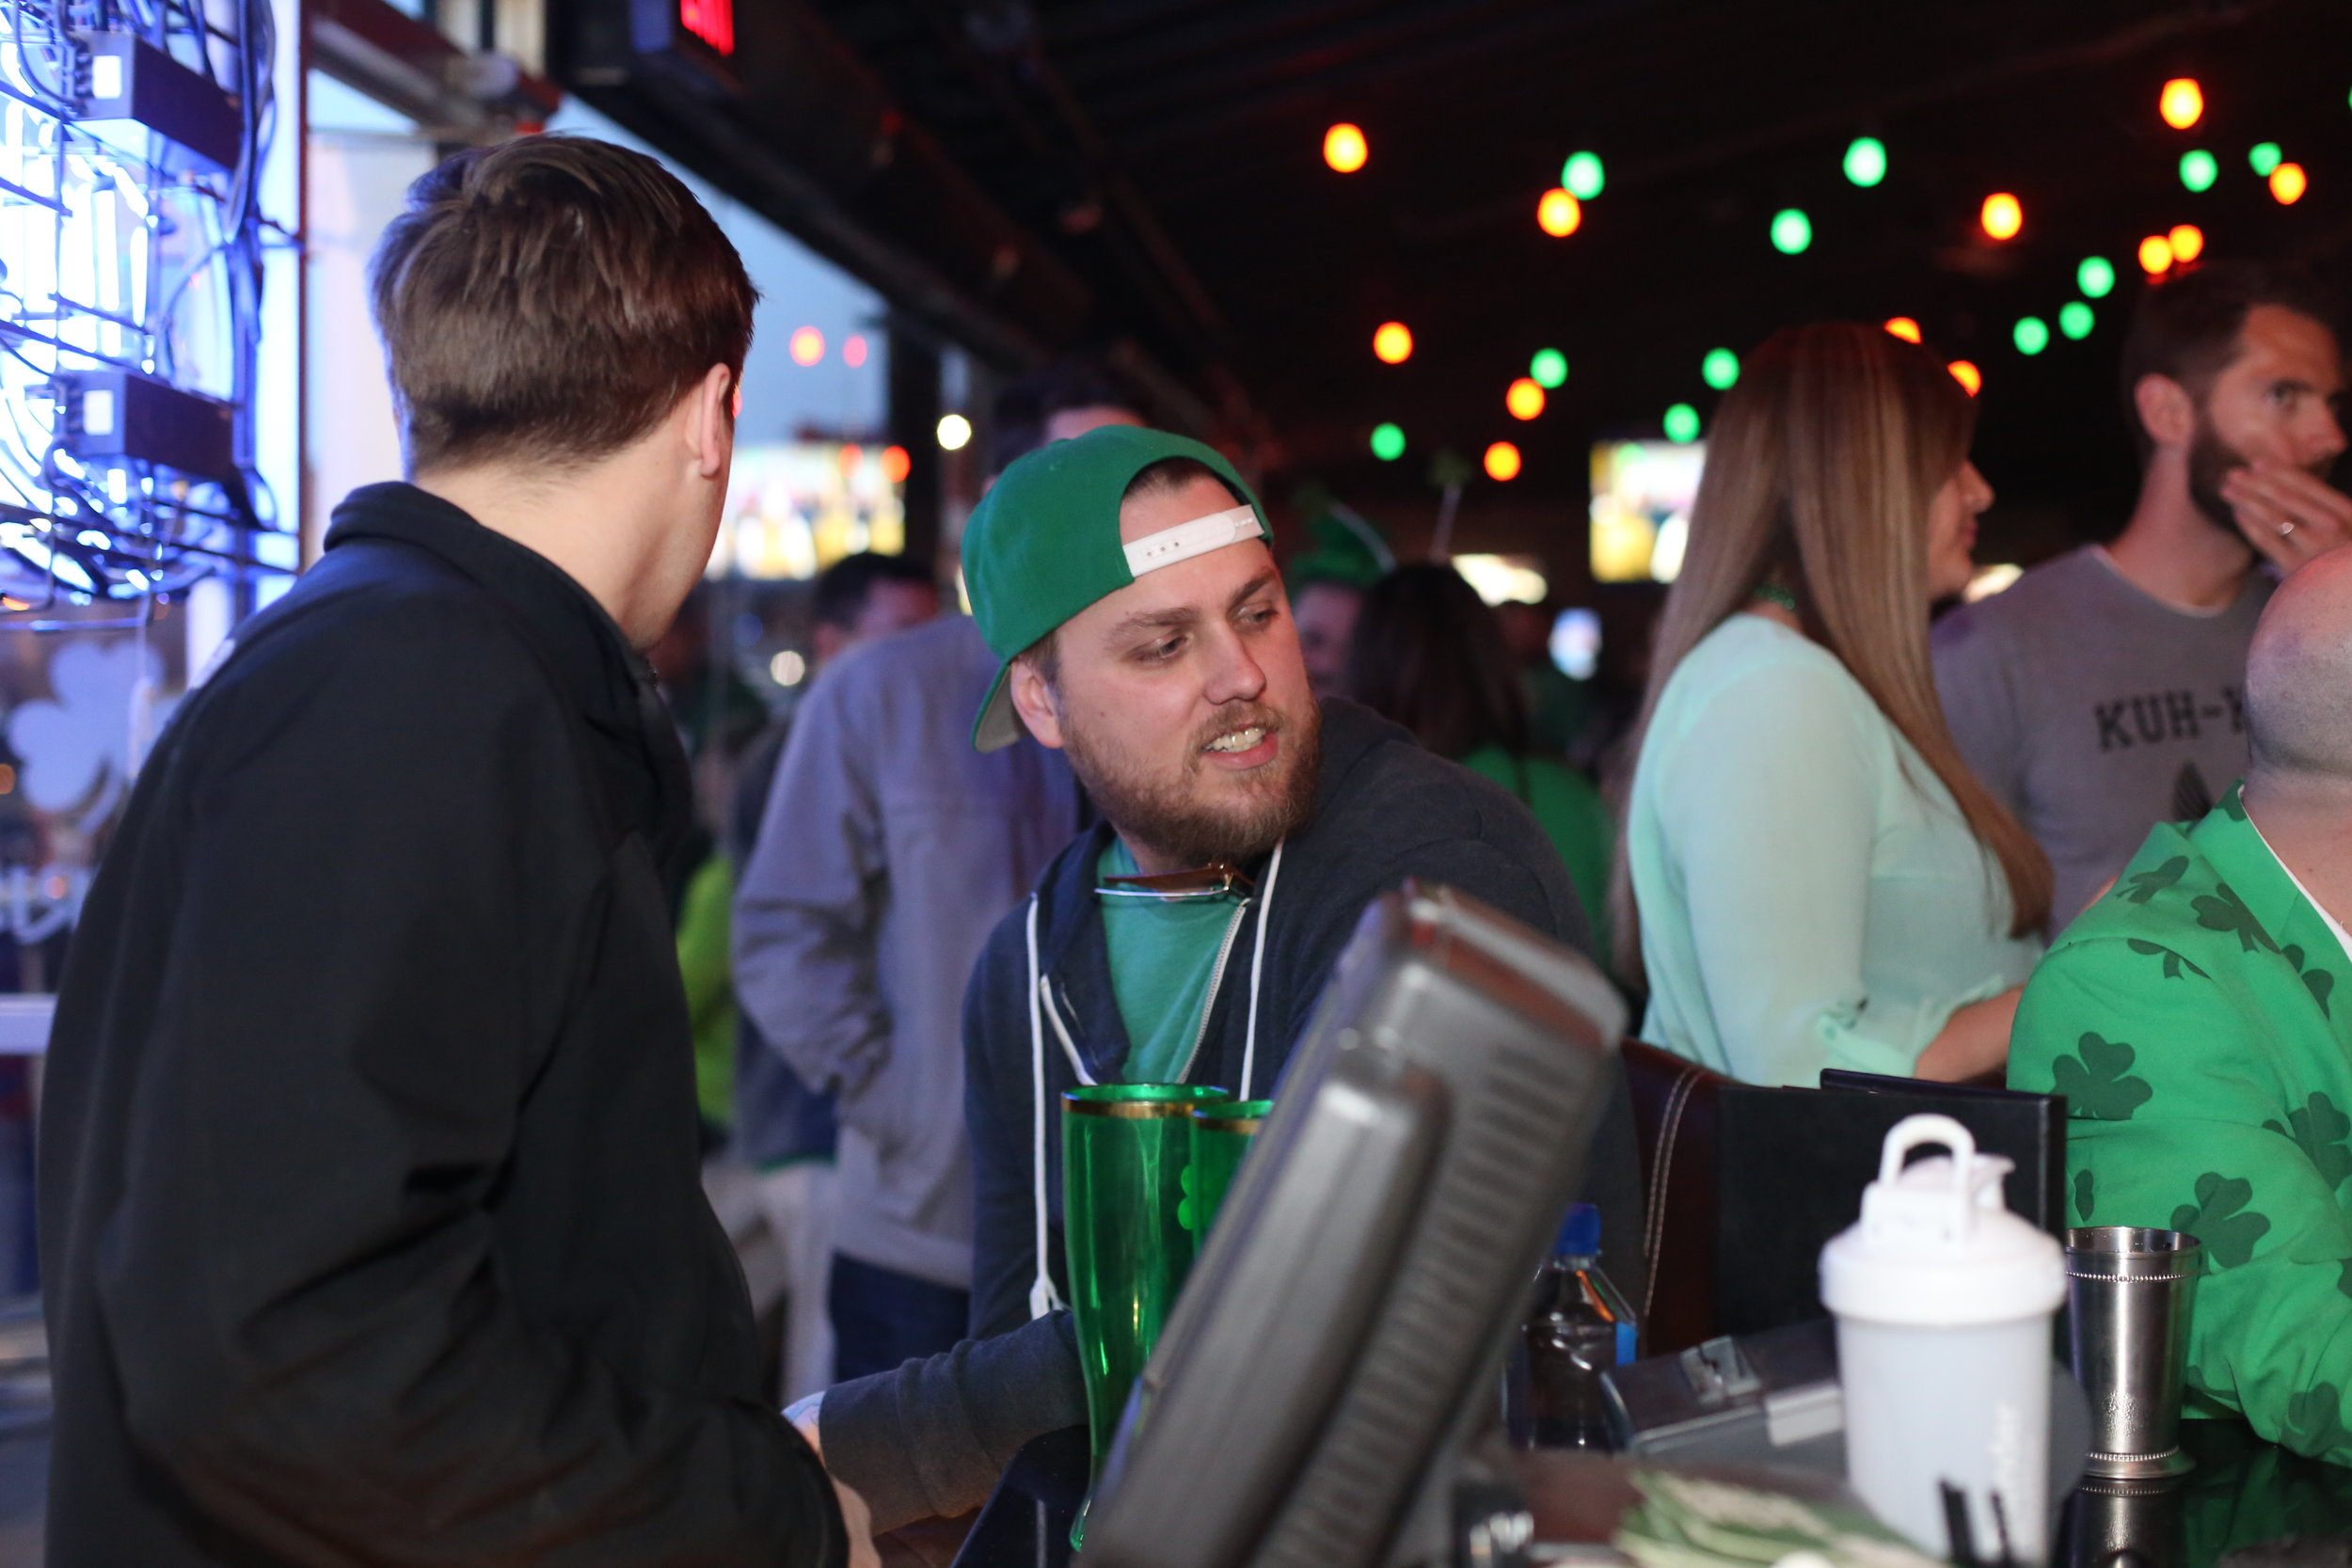 The Irish - A new pub in West Des Moines